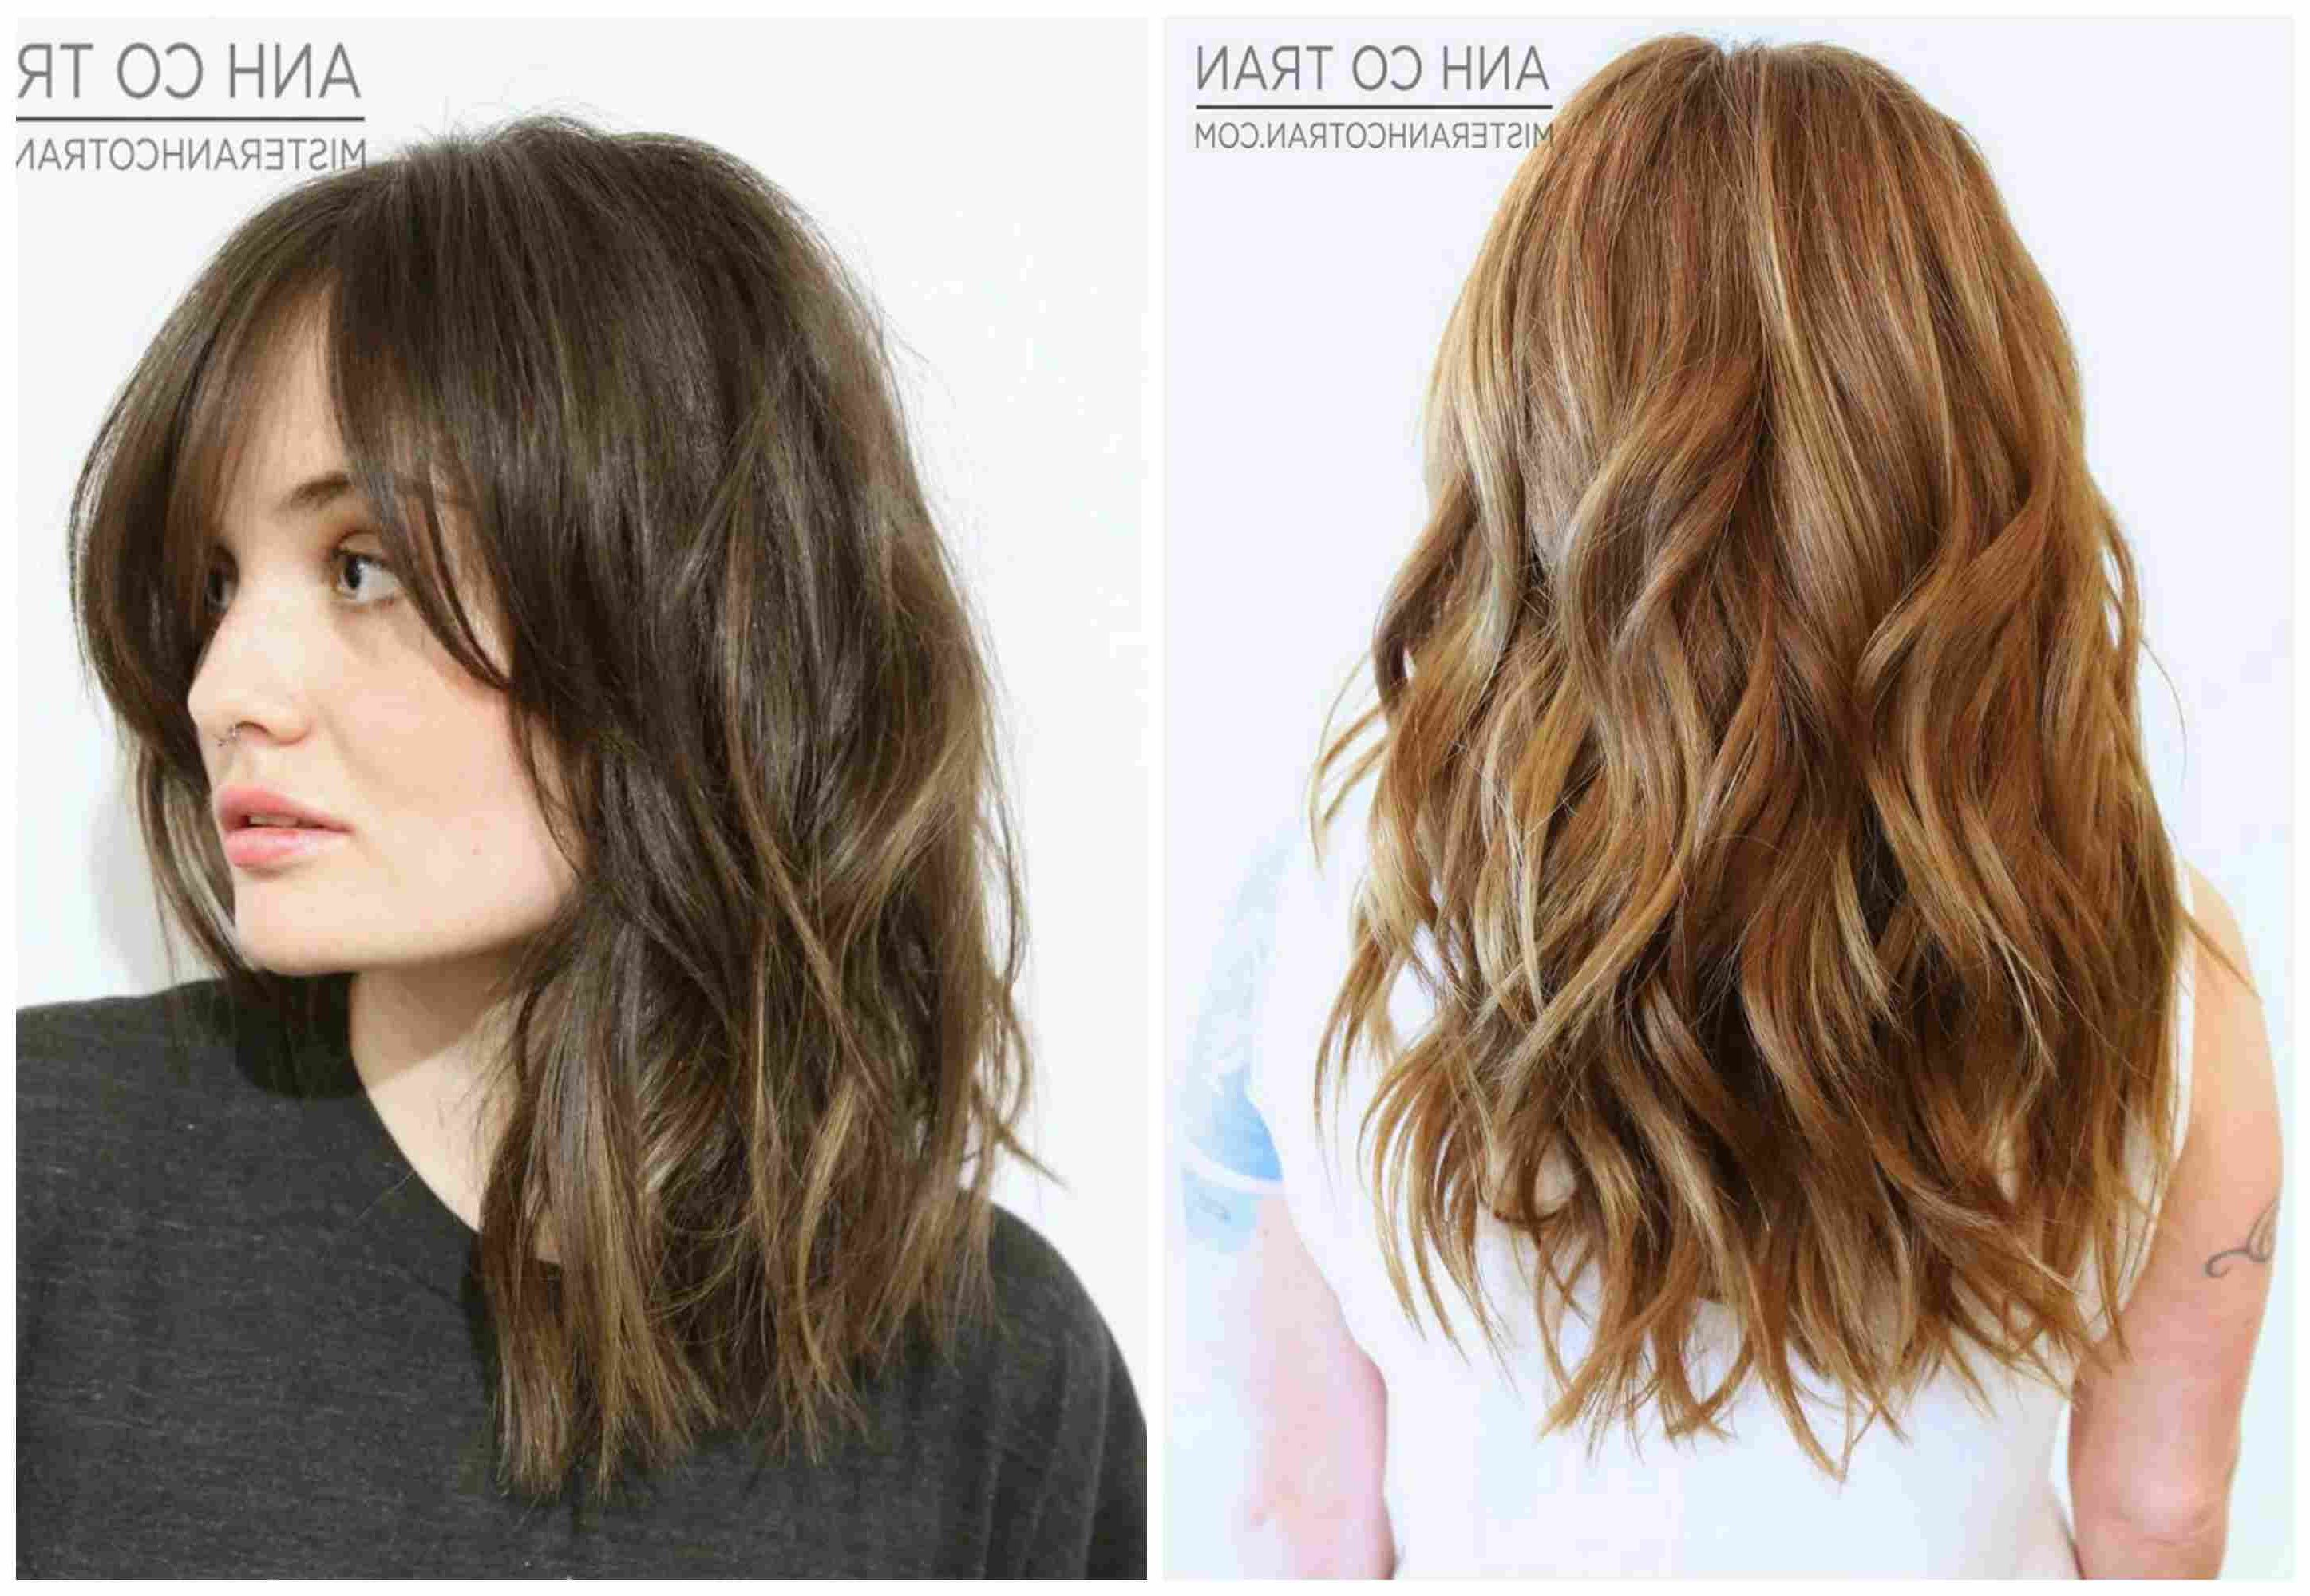 Long Wavy Hair: The Best Cuts, Colors And Styles Inside Newest Long Layered Waves Hairstyles (View 7 of 20)